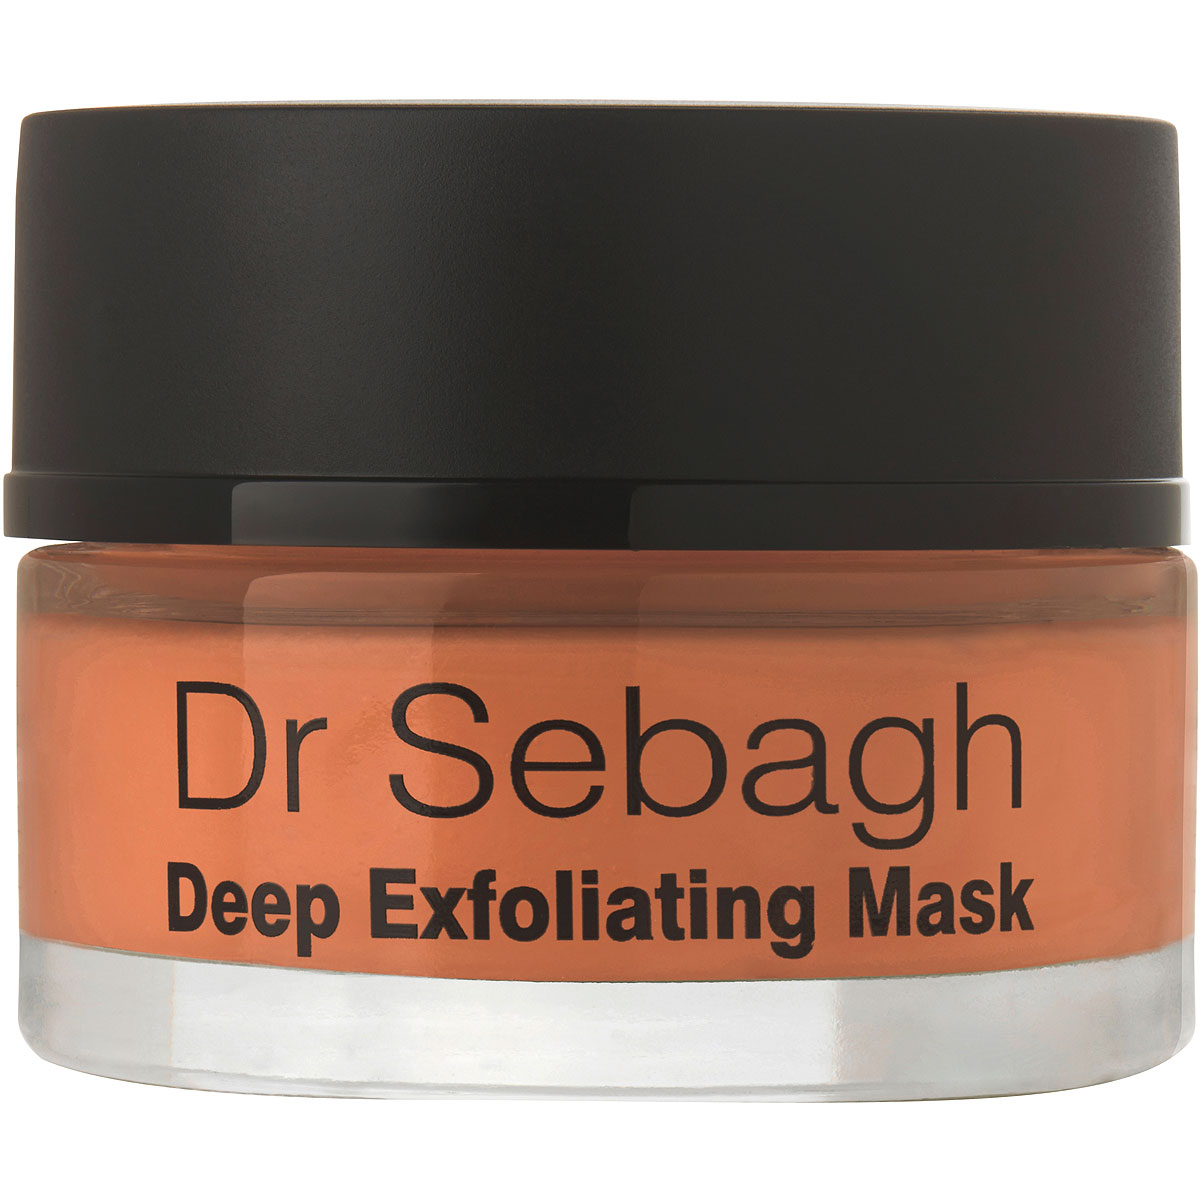 Dr Sebagh Beauty for Women, Deep Exfoliating Mask - 50 Ml, 2019, 50 ml